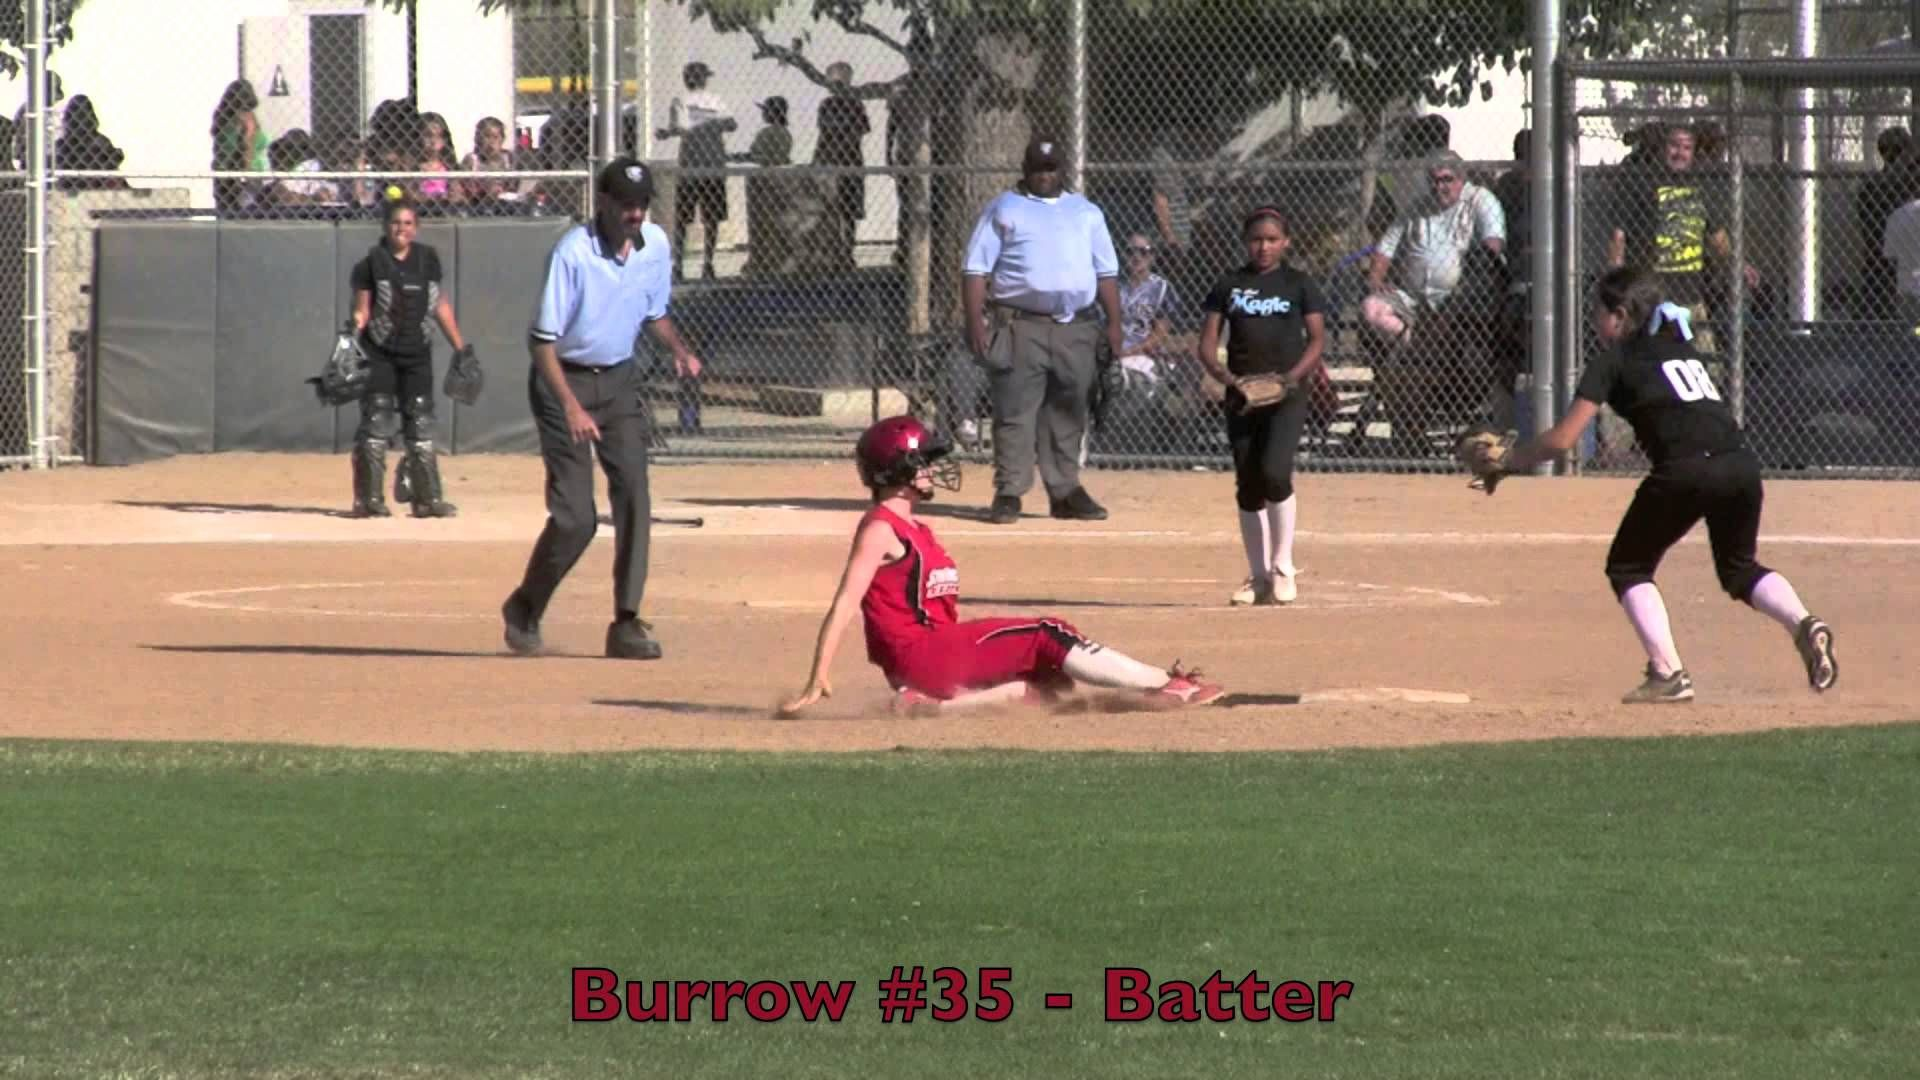 Emily Burrow Lead Off Double, Stealing 3rd & Scoring Vs